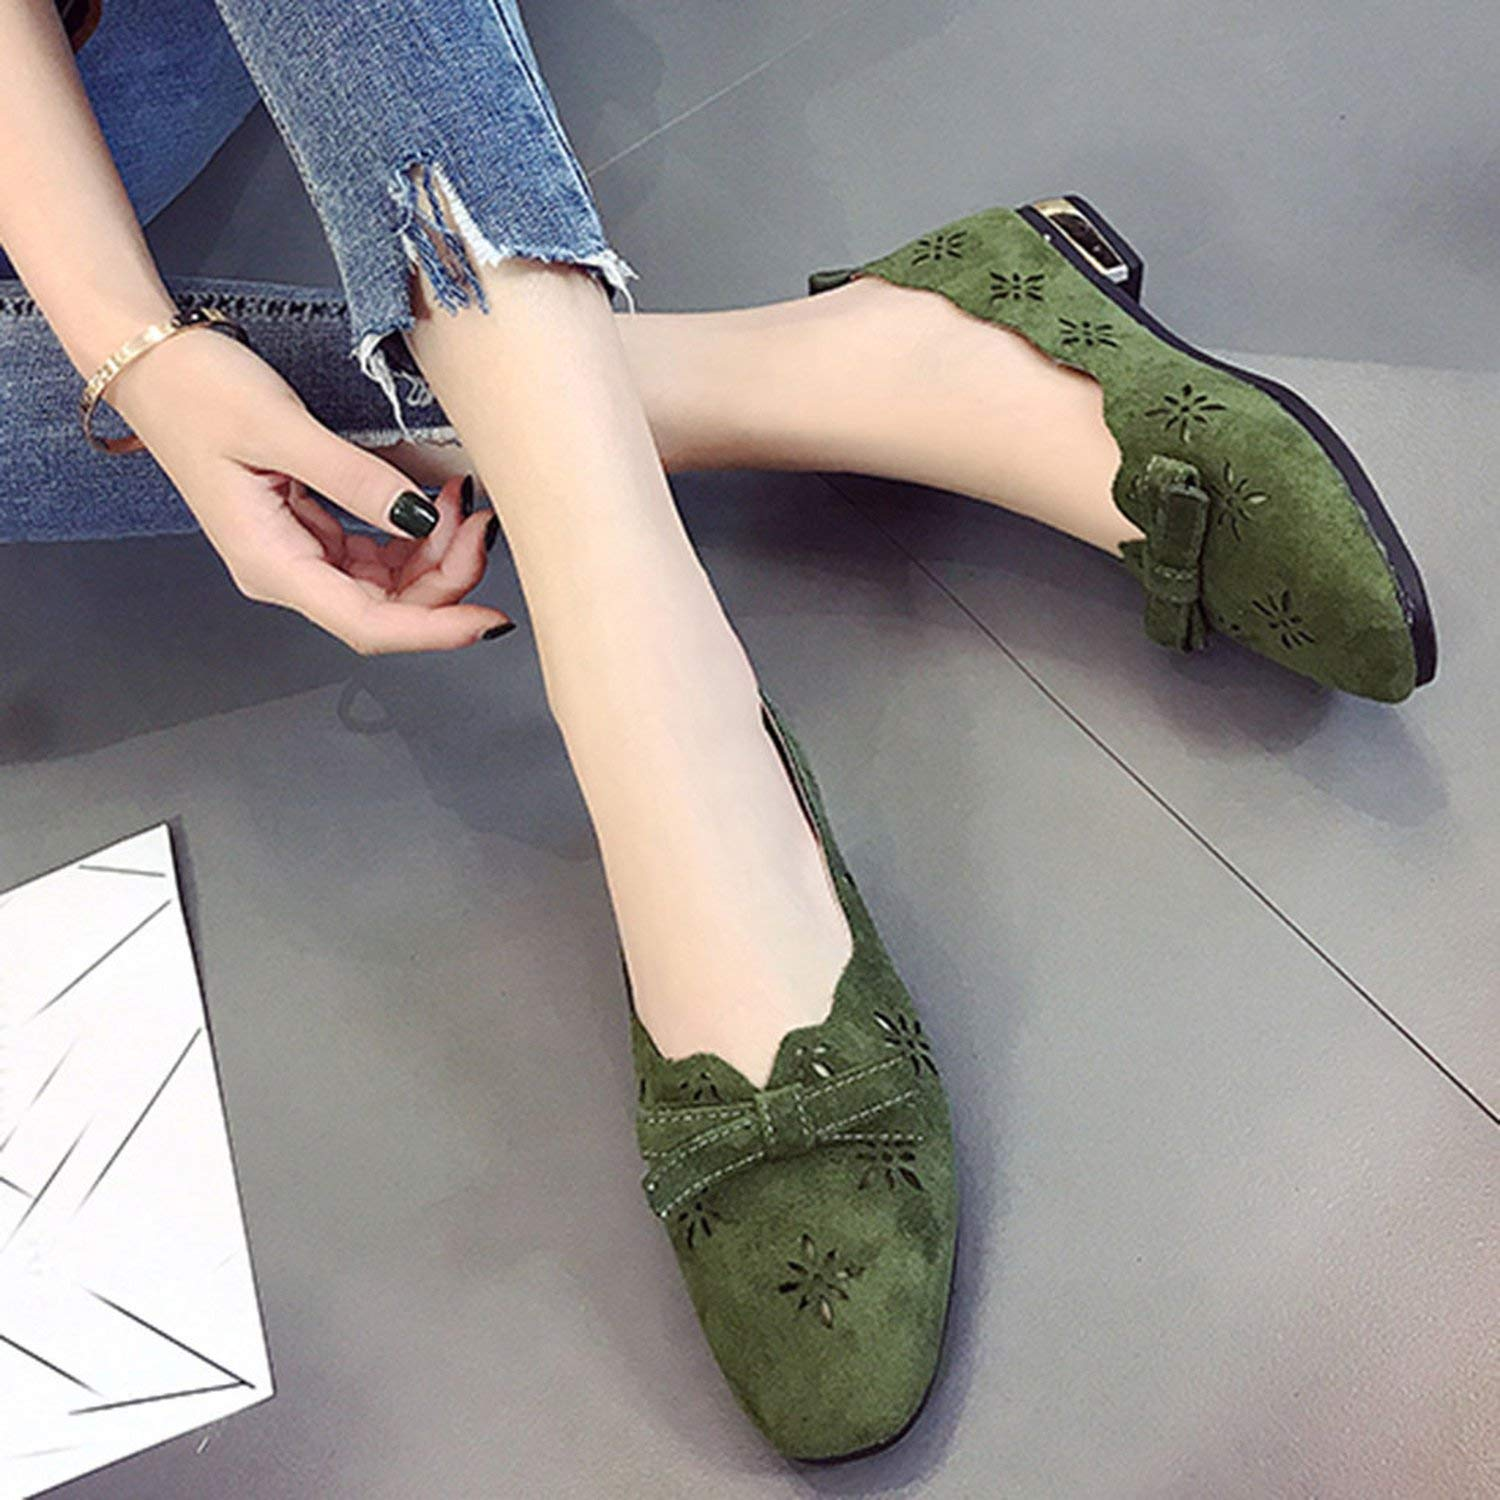 Collocation-Online Women Casual Slip On Shoes Solid Fashion Loafer Female Frosted face Pointed Plain Flat Shoe Single Shoes #30,Green,38,China